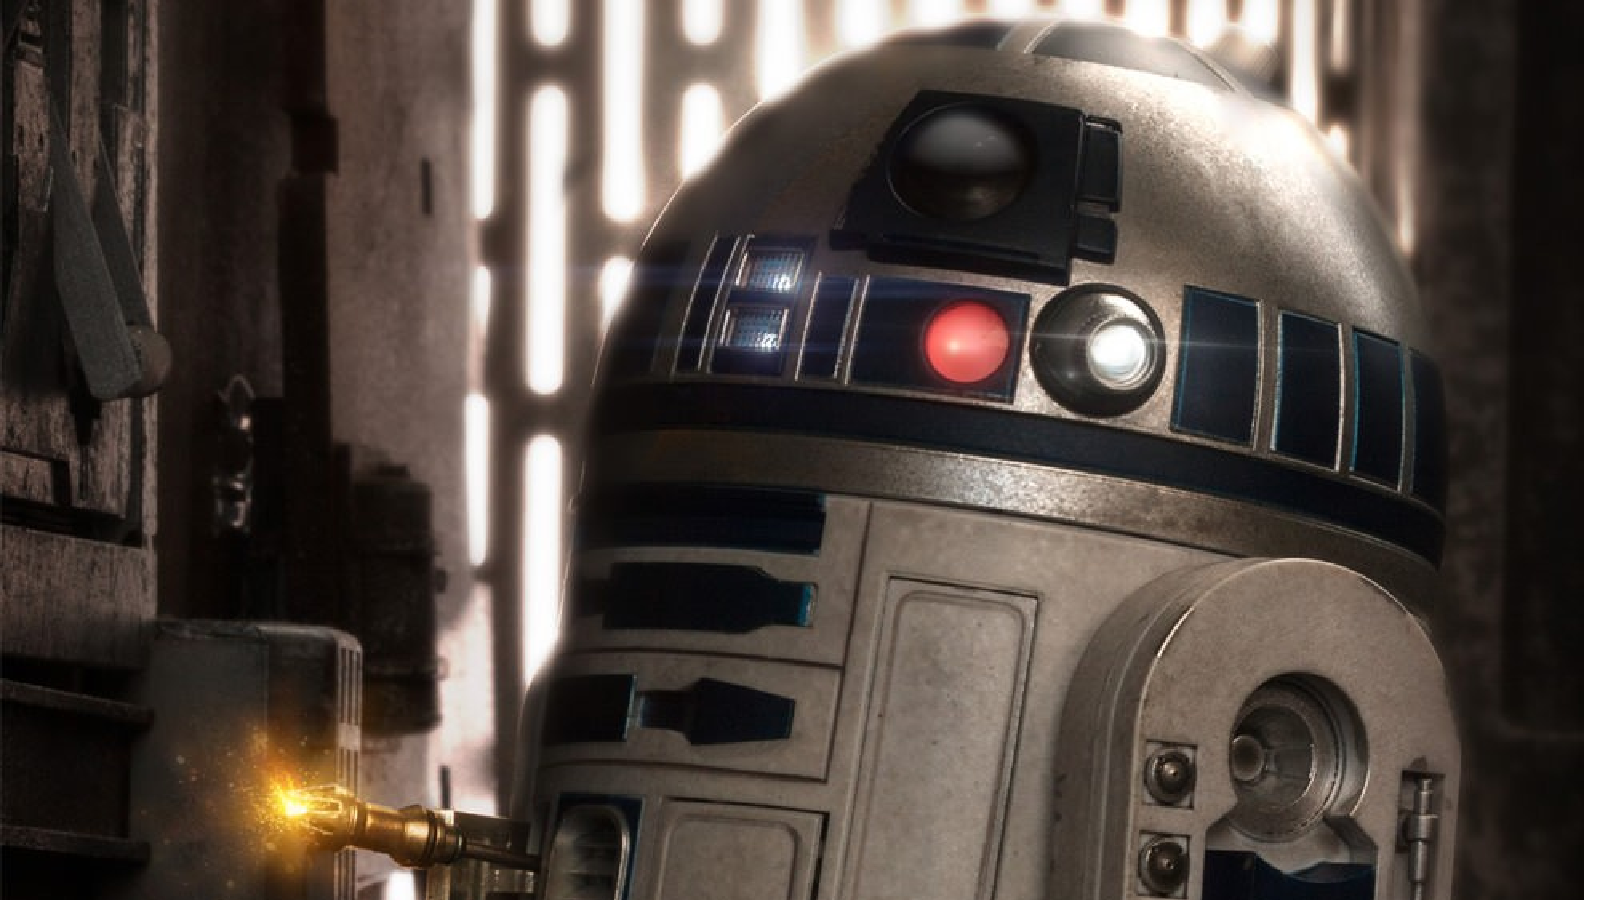 R2-D2 Auctioned Off For $4 Million, Likely Not To A Kid Whining About Power Converters